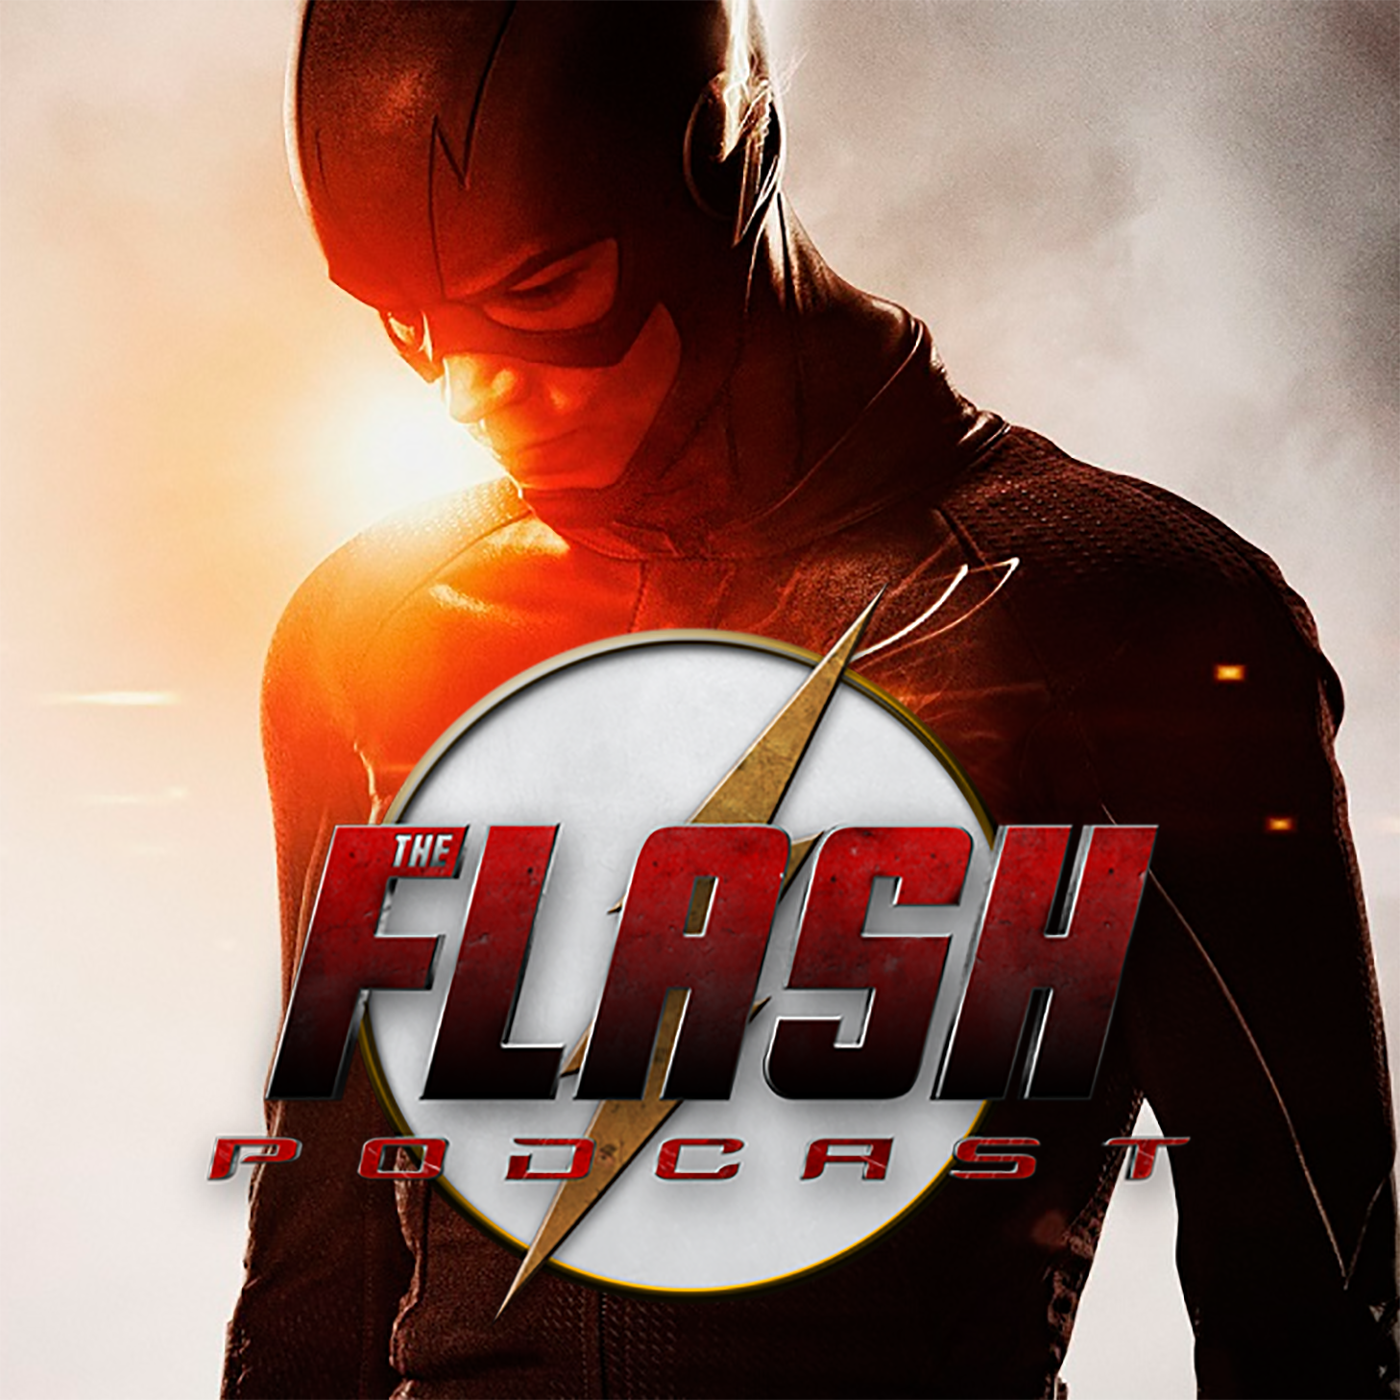 The Flash Podcast Season 2 – Episode 5: The Darkness and the Light